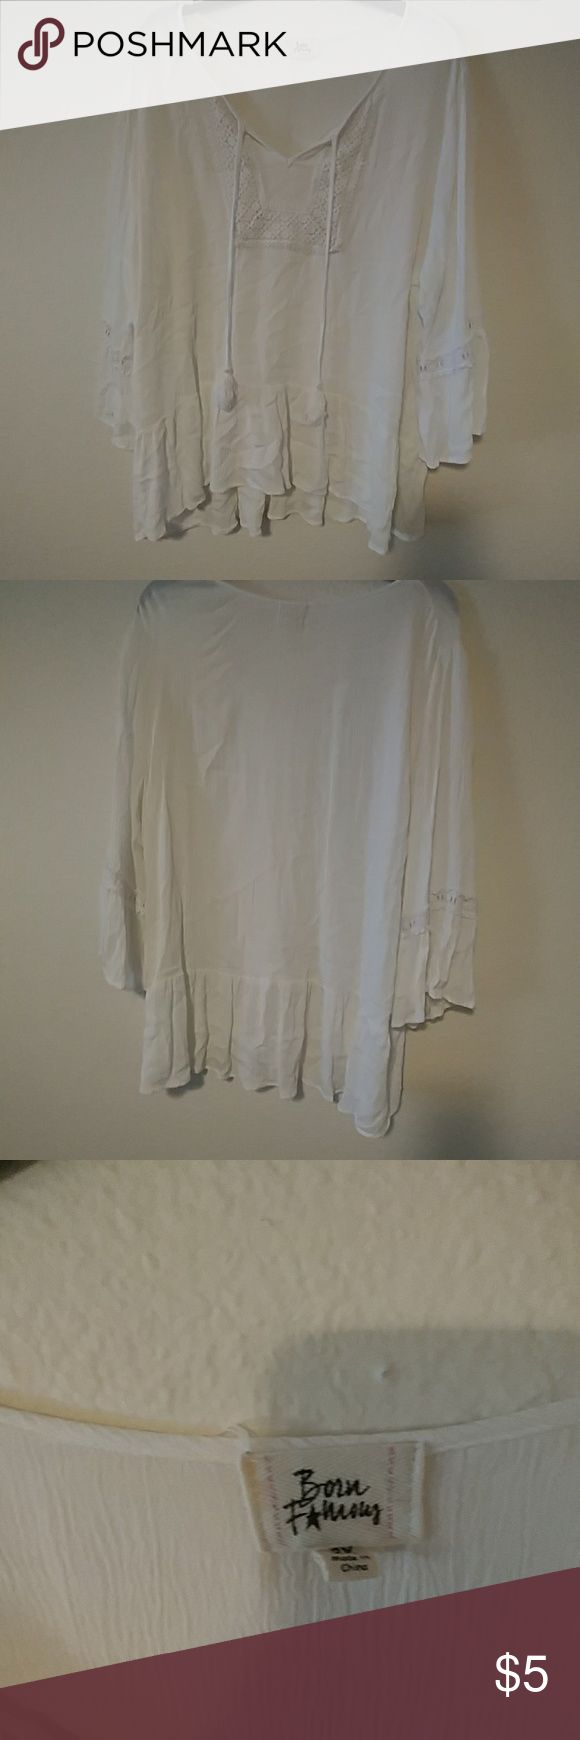 White flowing 2x top Never worn but washed  Juniors 2x top Tops Blouses